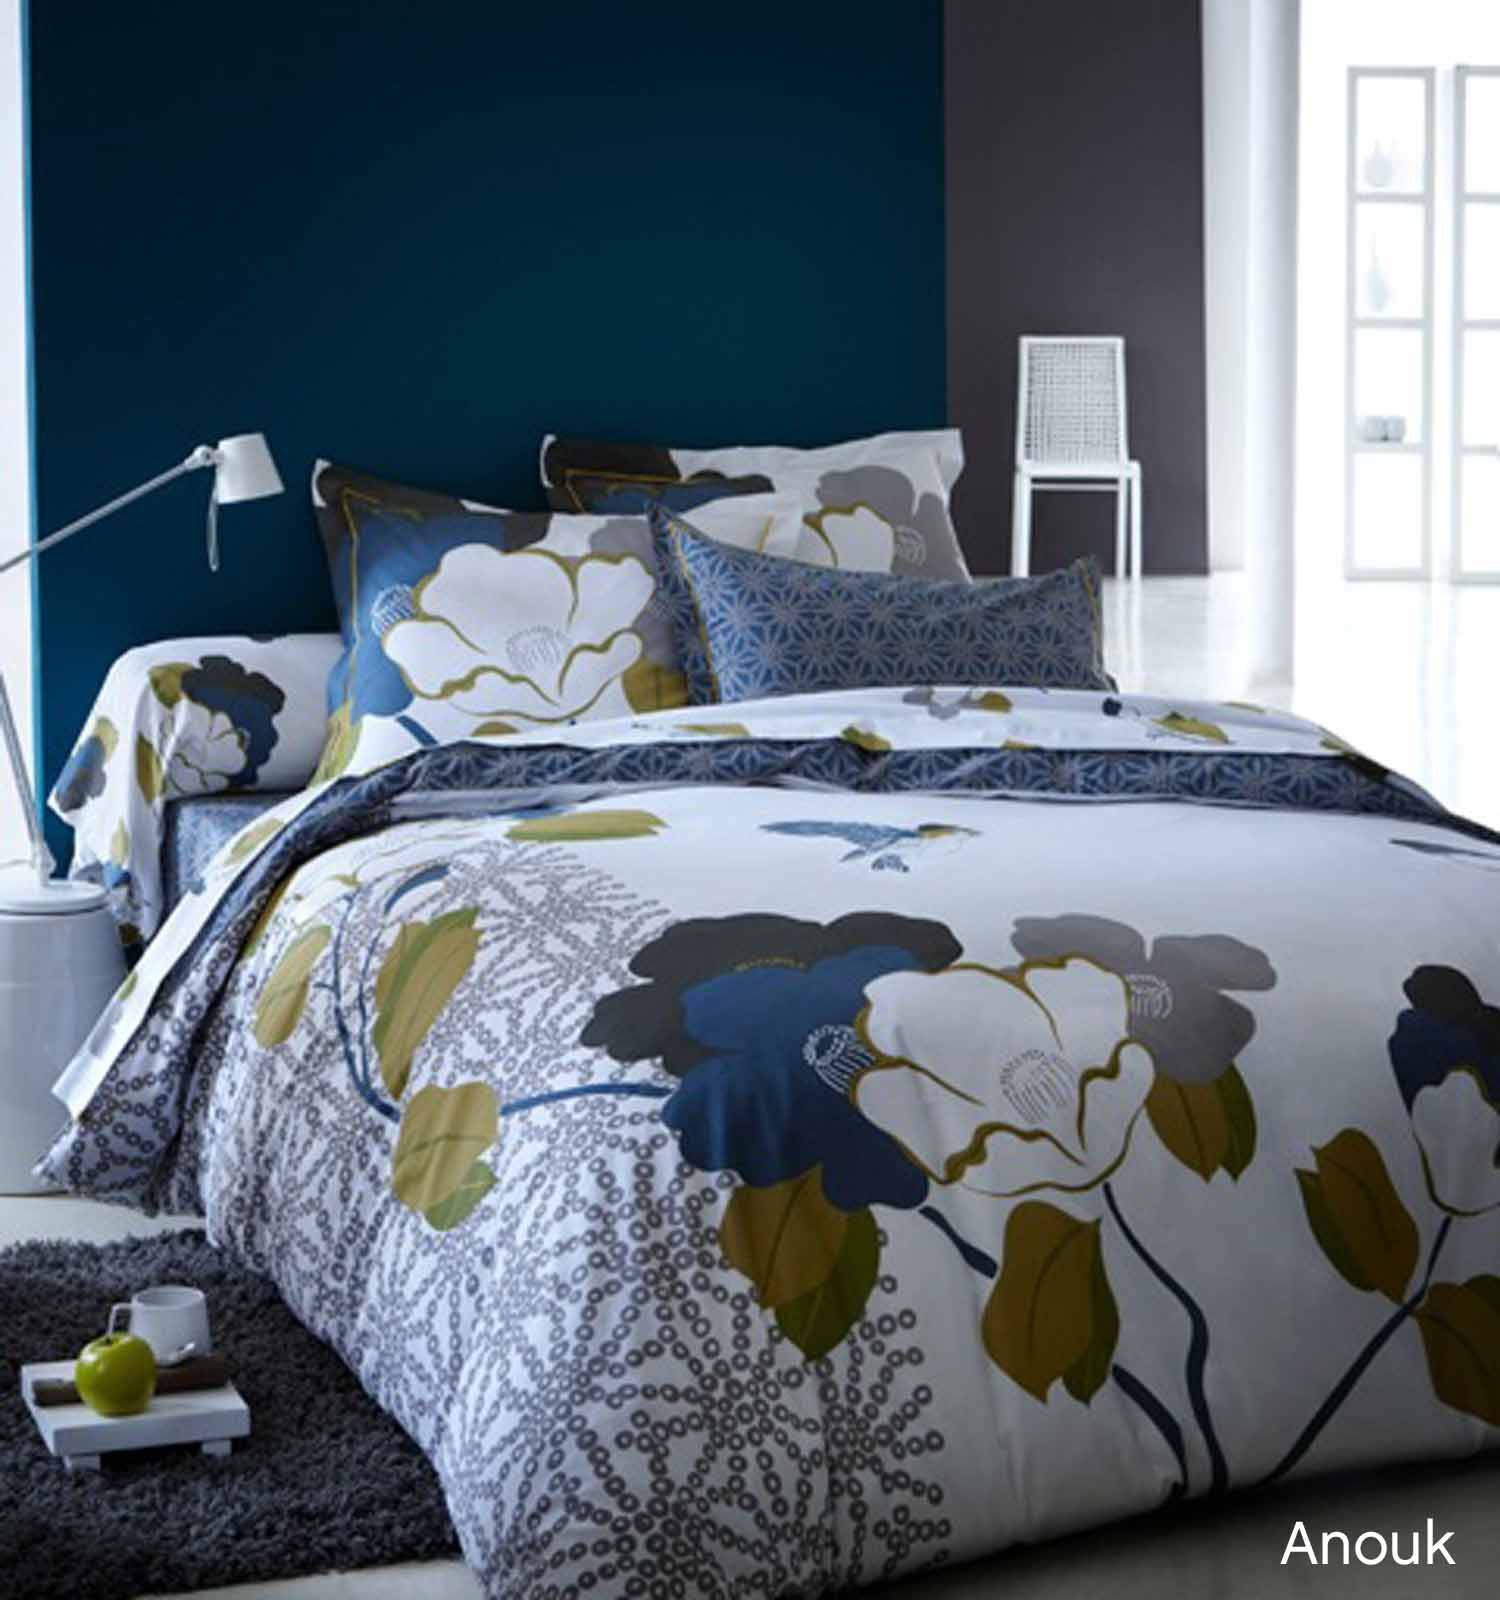 Linge De Lit Made In France Linge De Lit Tradilinge Bed Linen Collection 2012 Made In France